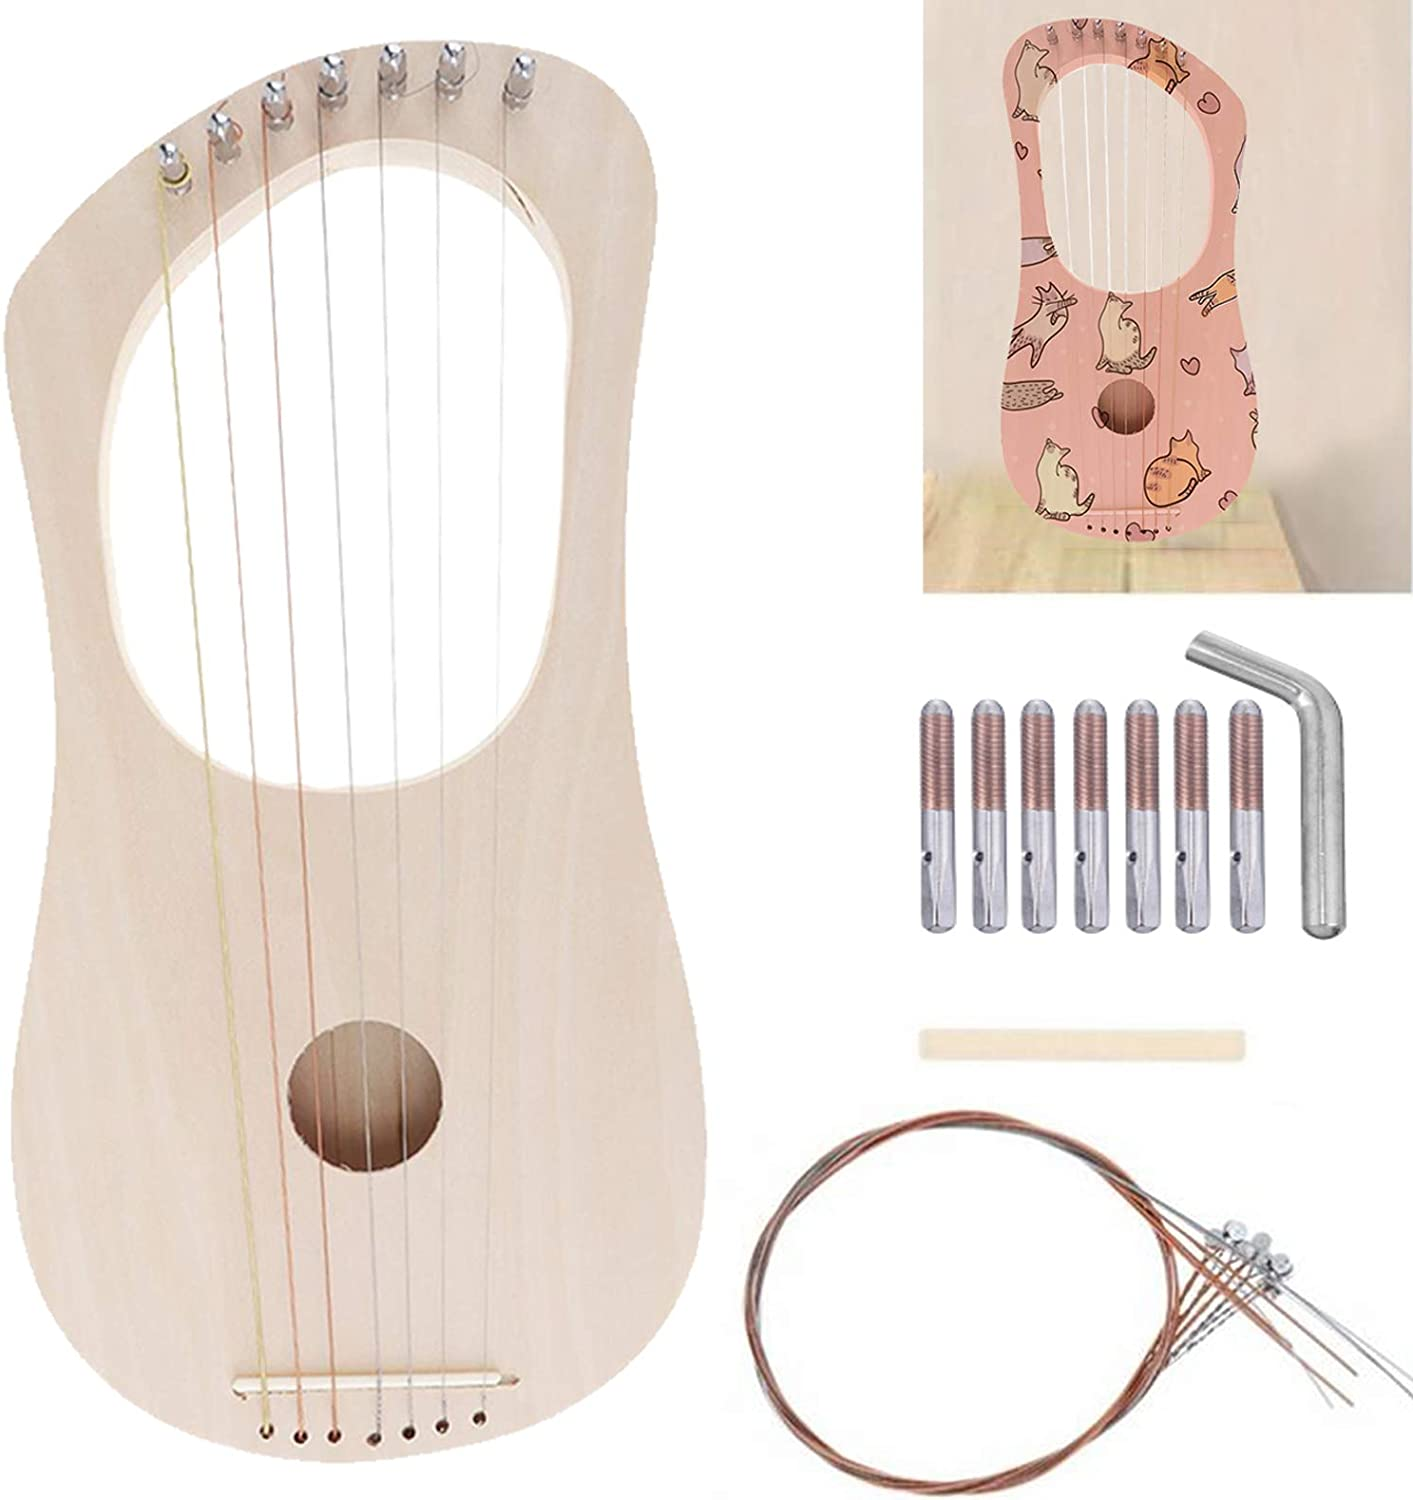 Lyre Harp 7 String DIY Kit Ancient Style Lyres Wood String Instrument Lyre Harp Making Material Kit Bass Wood with String Post String Saddle Tuning Wrench for Kids and Adults